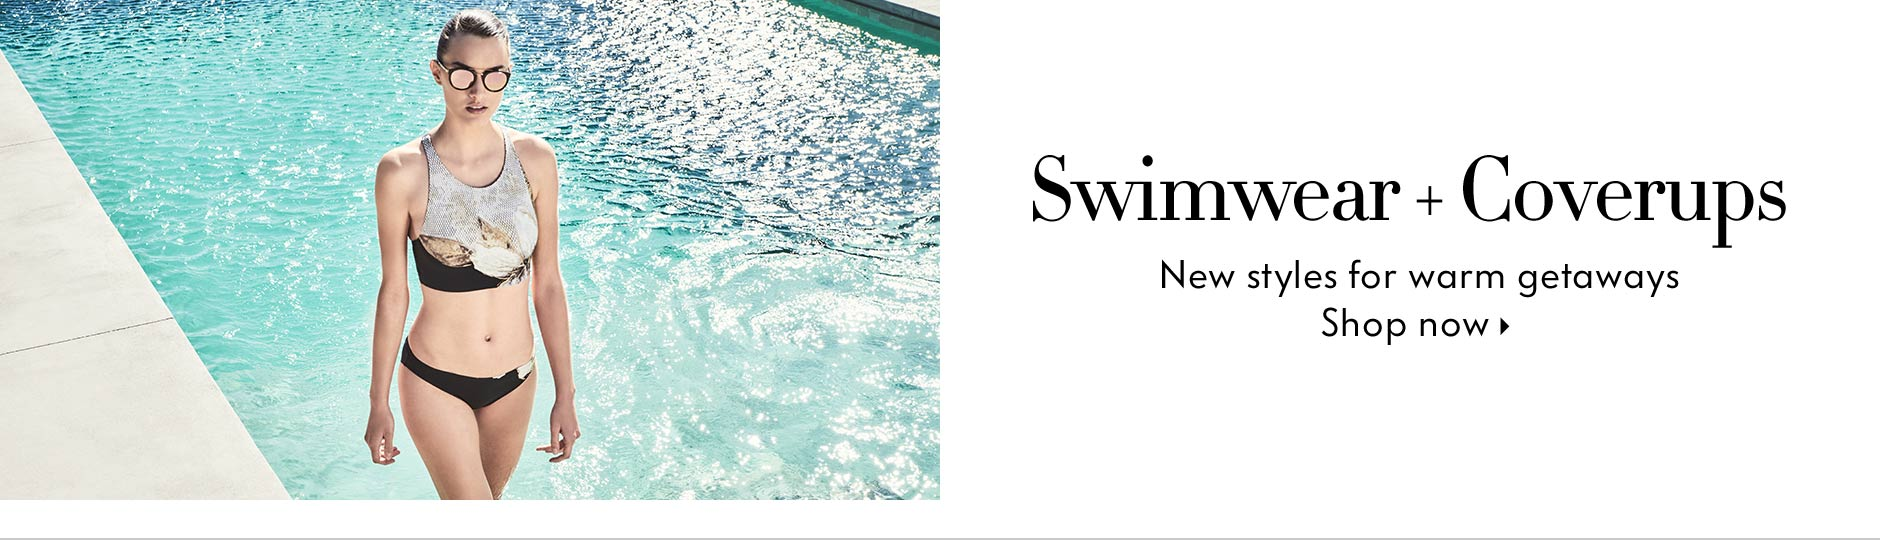 New Swim Wear Trends Lookbook